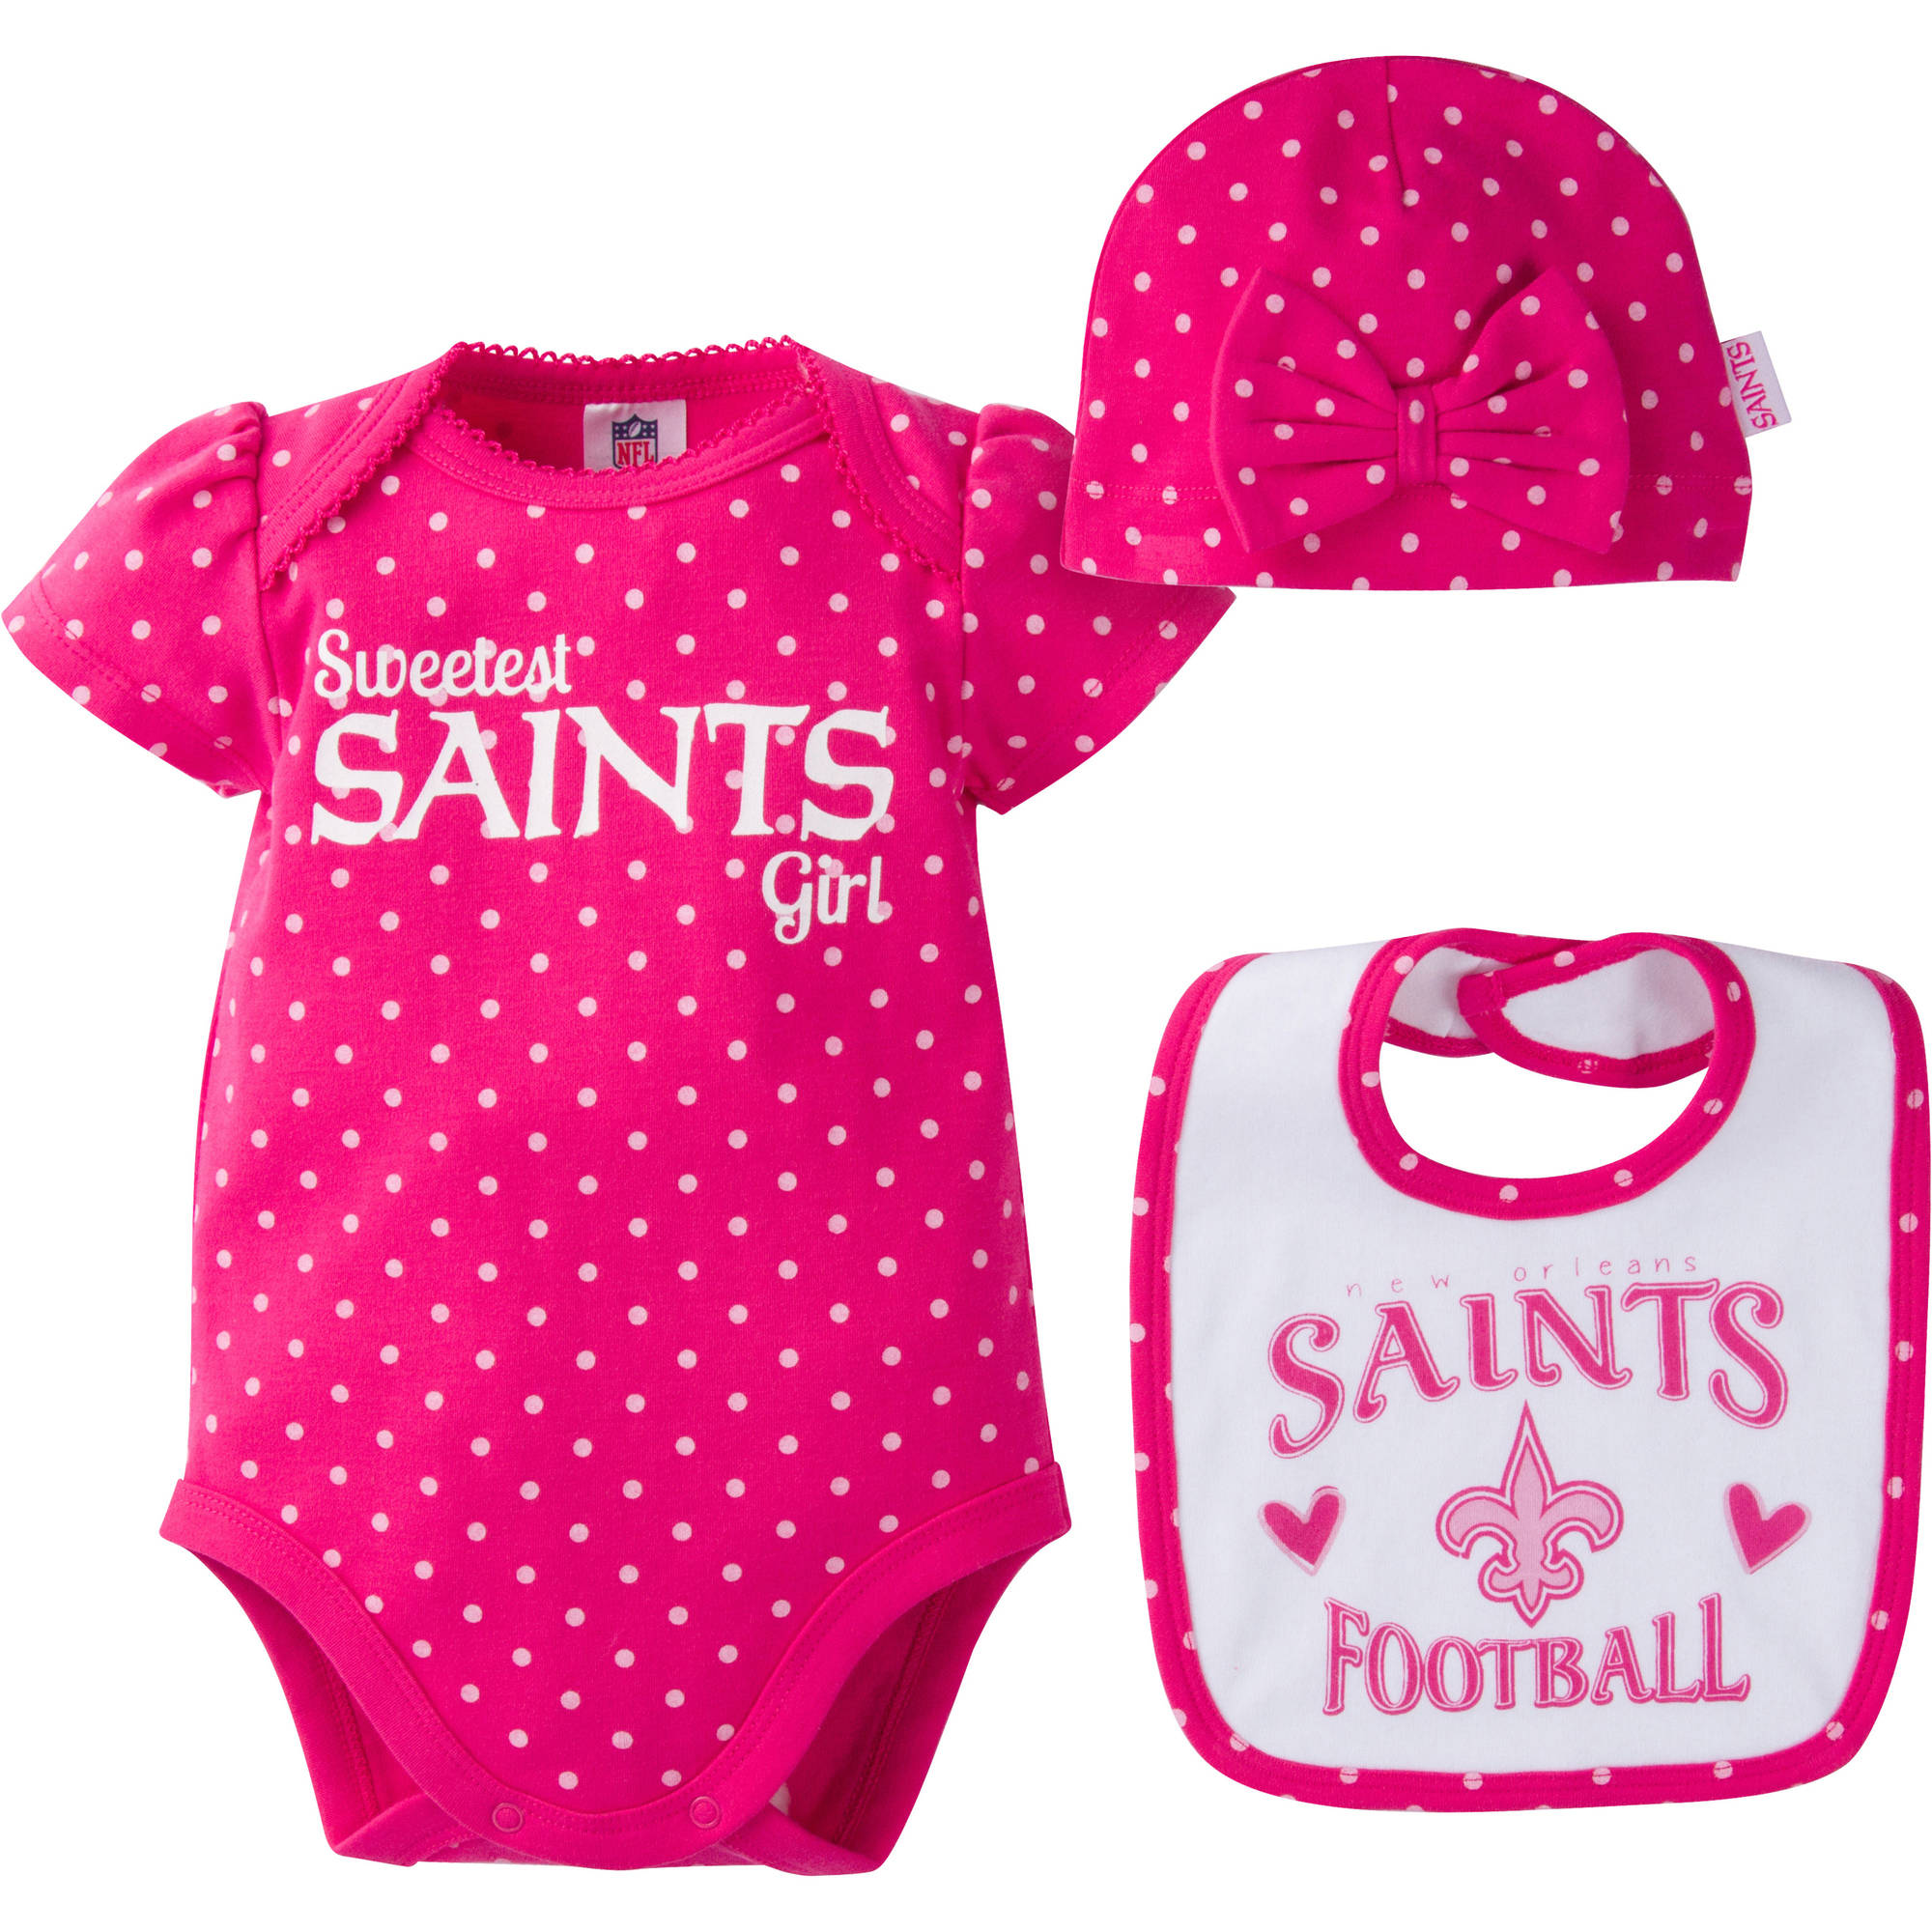 Personalized 3 Piece Turtle Themed Baby Girl Gift Set  Bodysuit Bib and Blanket  Pink White and Black